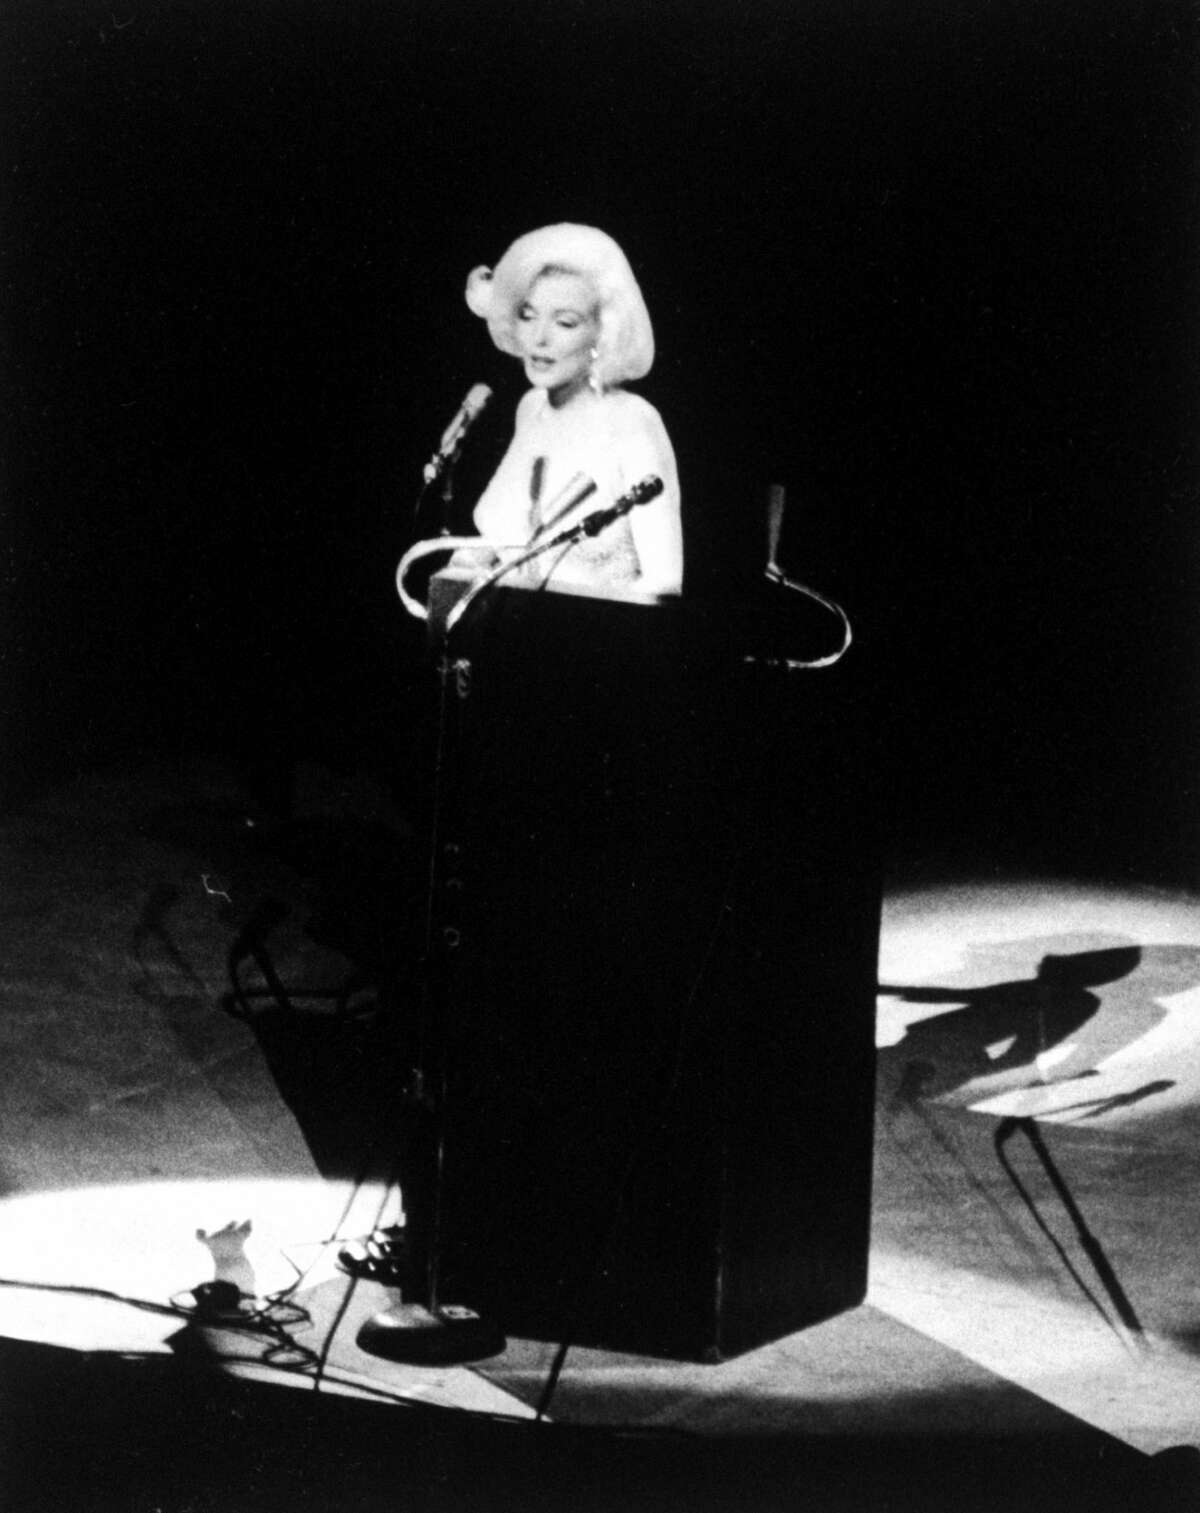 Actress Marilyn Monroe singing Happy Birthday at the Democratic rally for President John F. Kennedy's birthday. (Photo by Yale Joel/The LIFE Picture Collection/Getty Images)